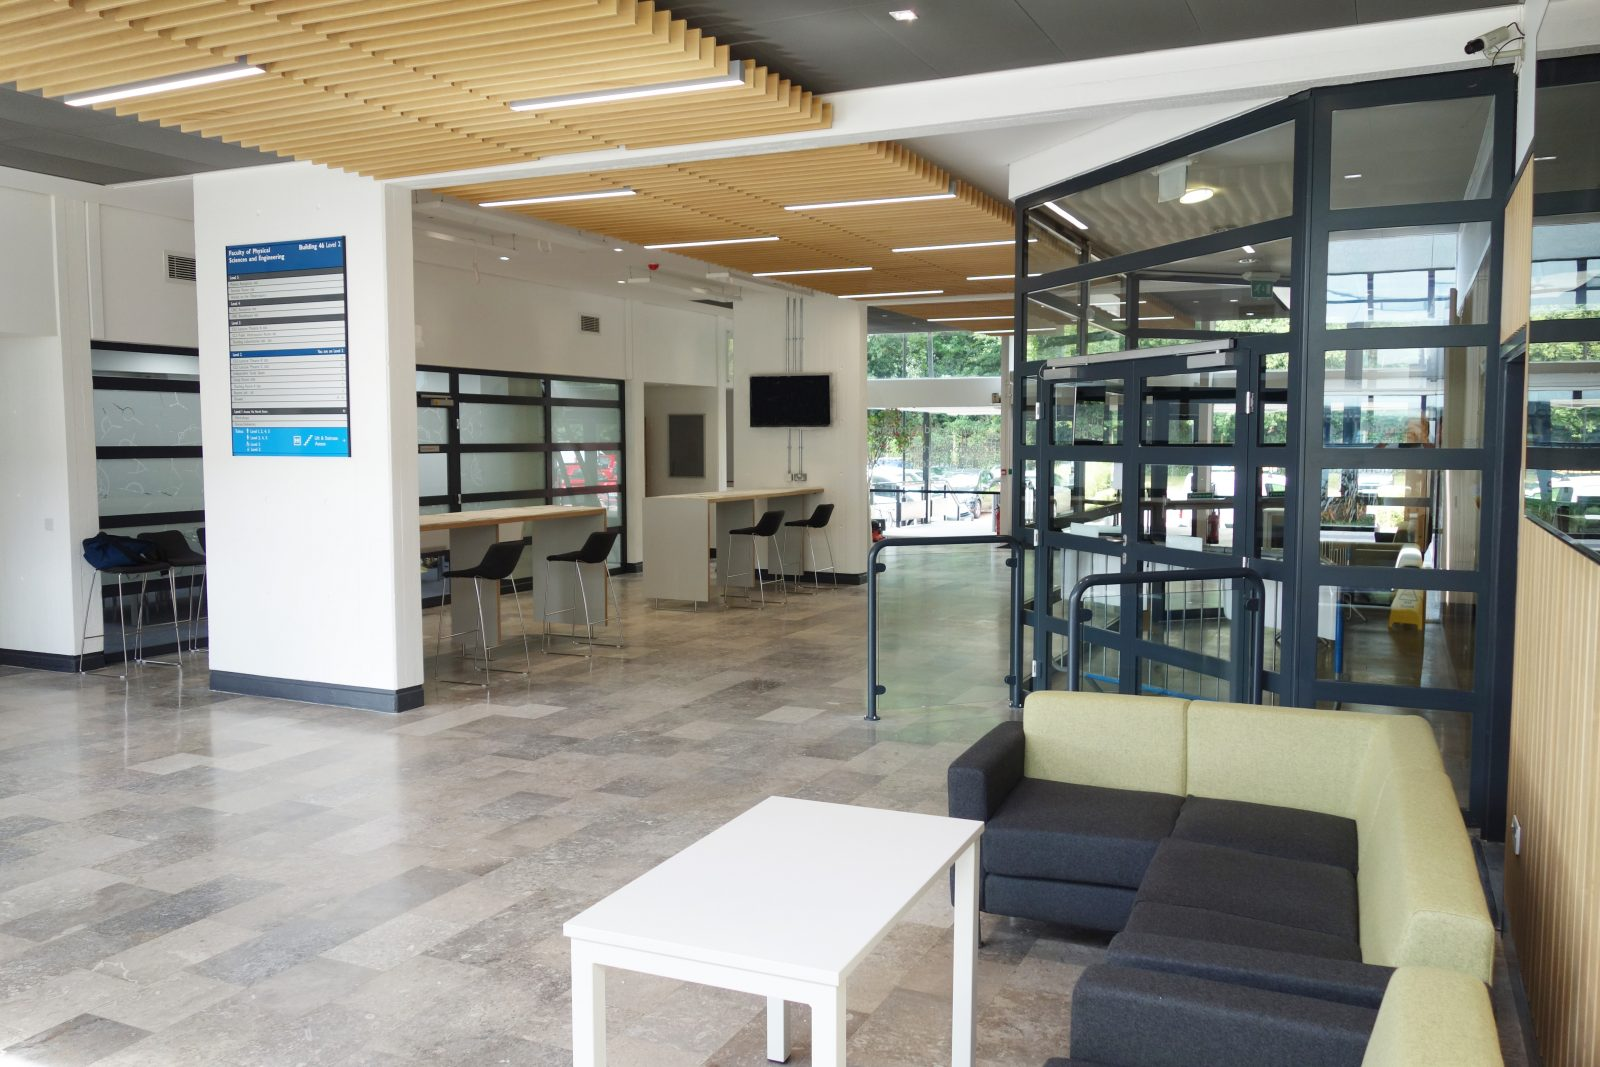 Common Learning Space